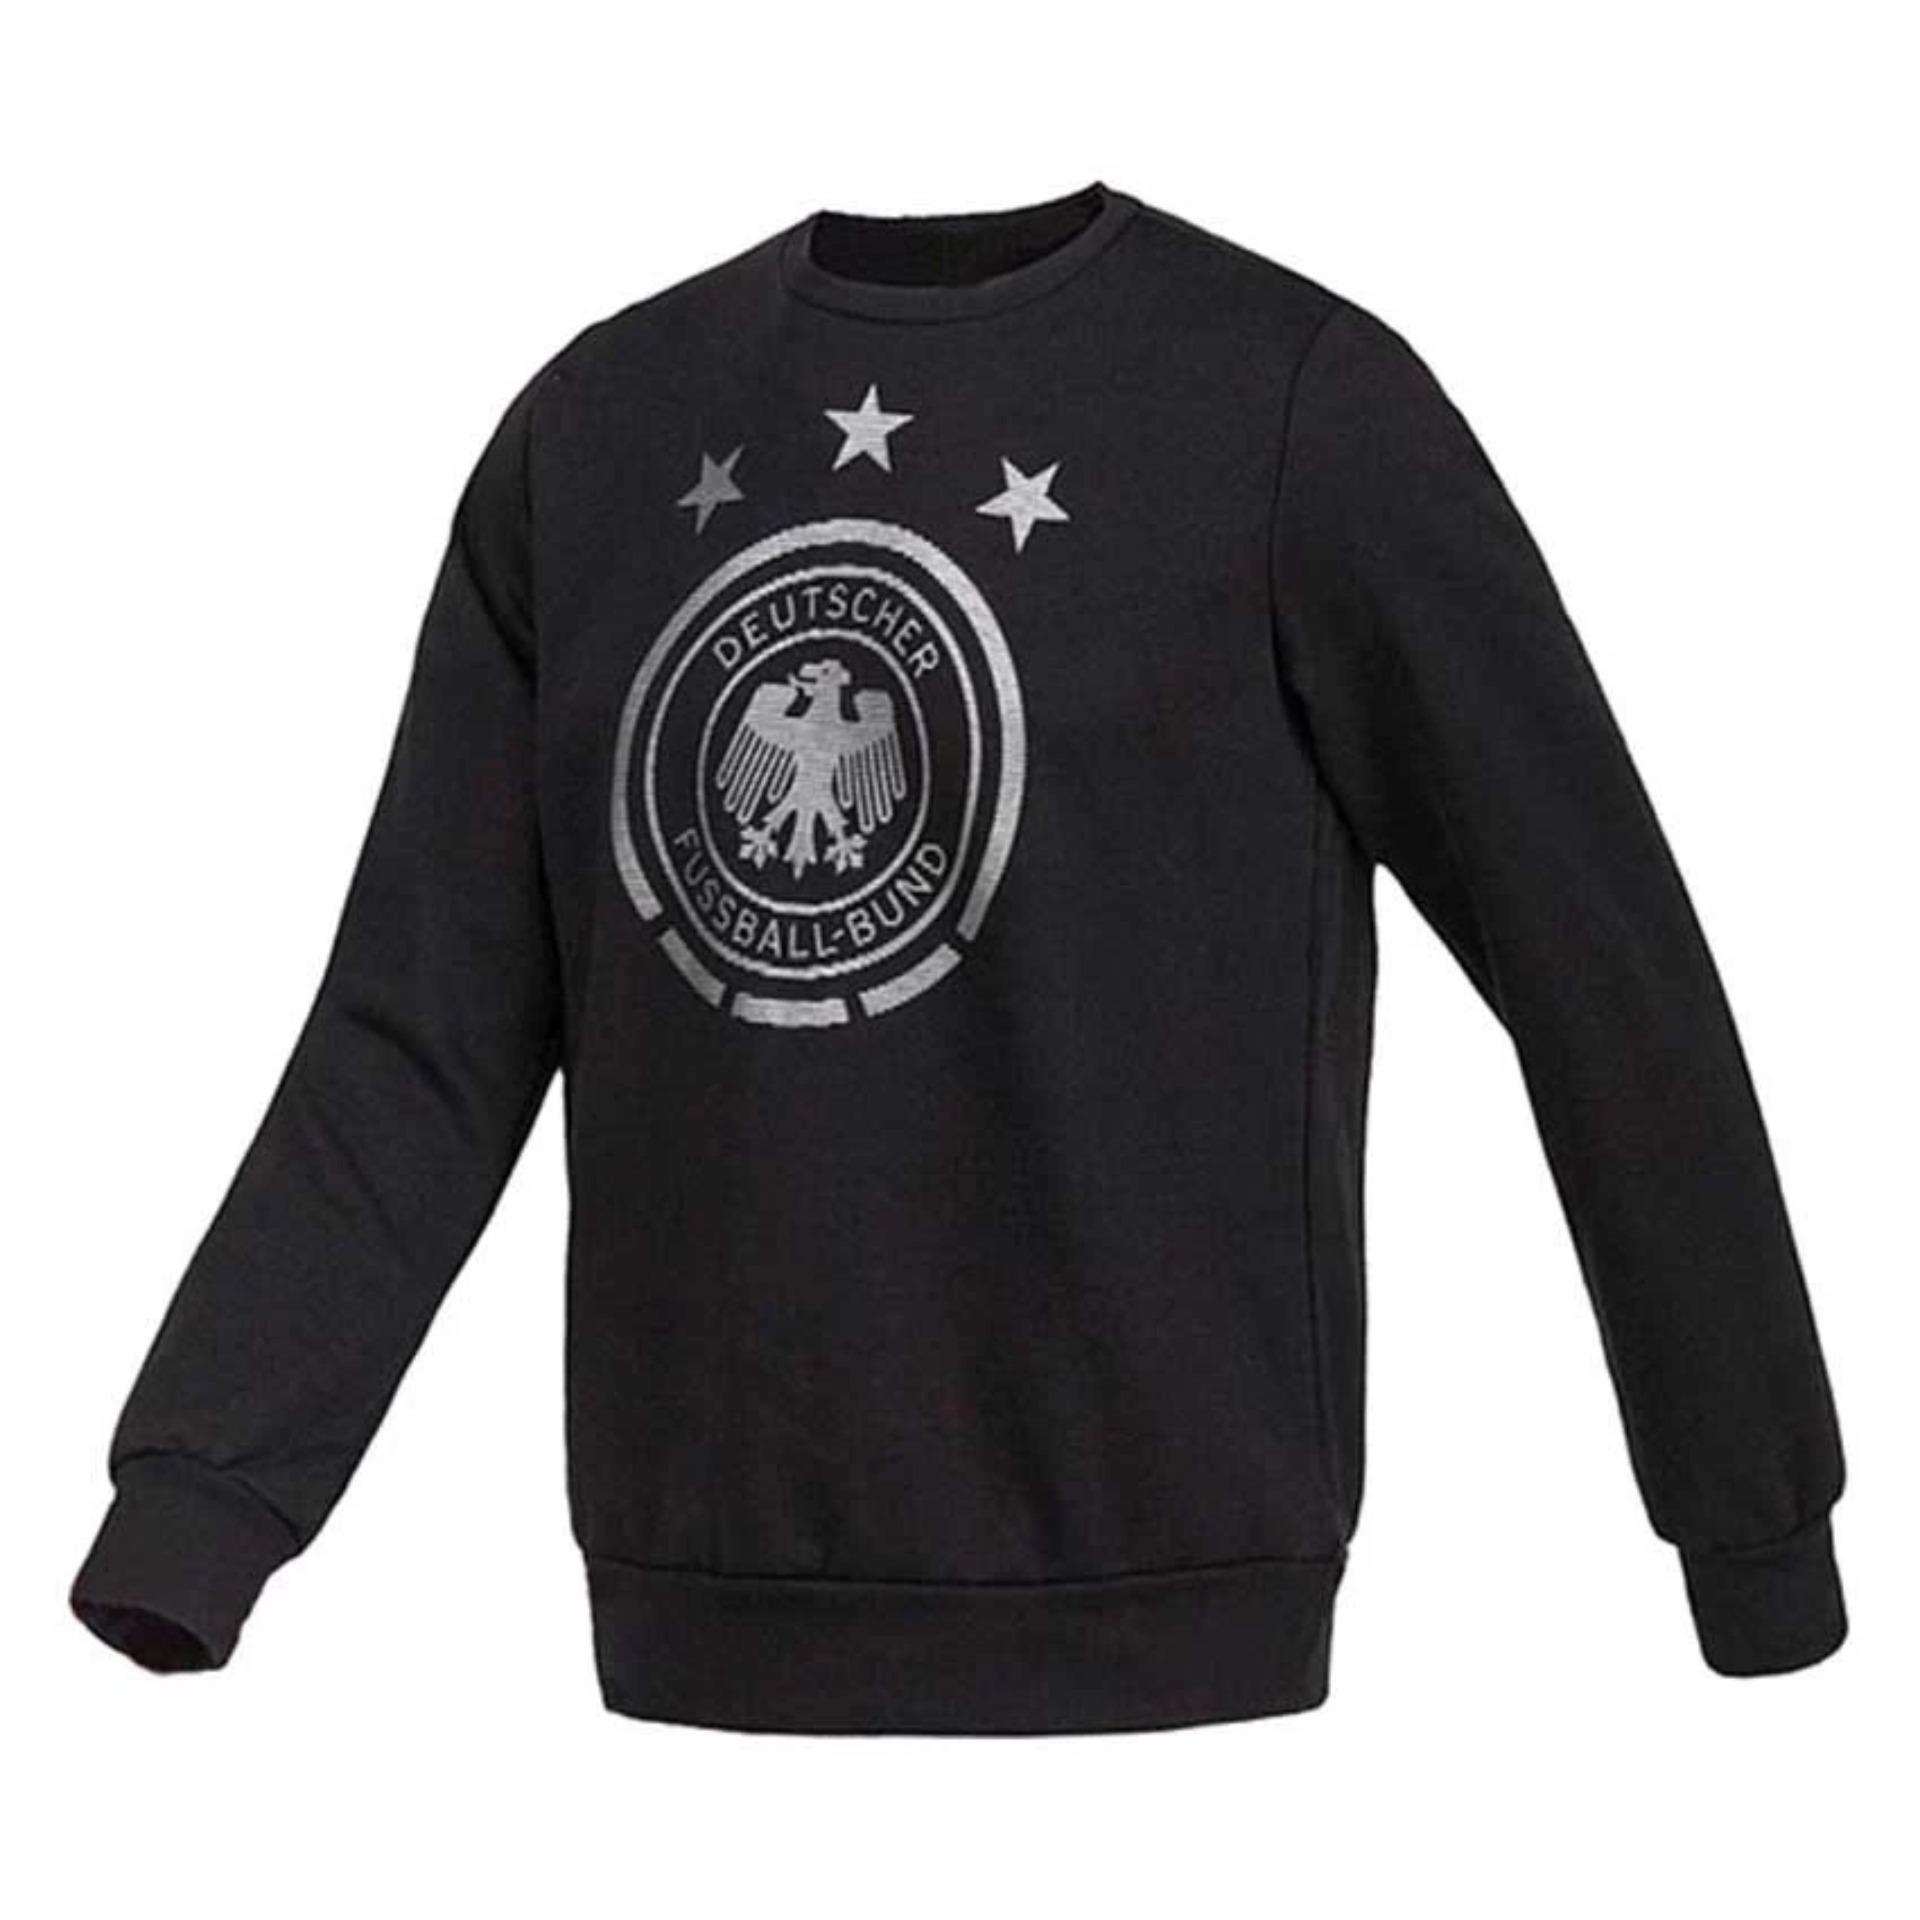 Harga Sweater Germany Hitam Murah